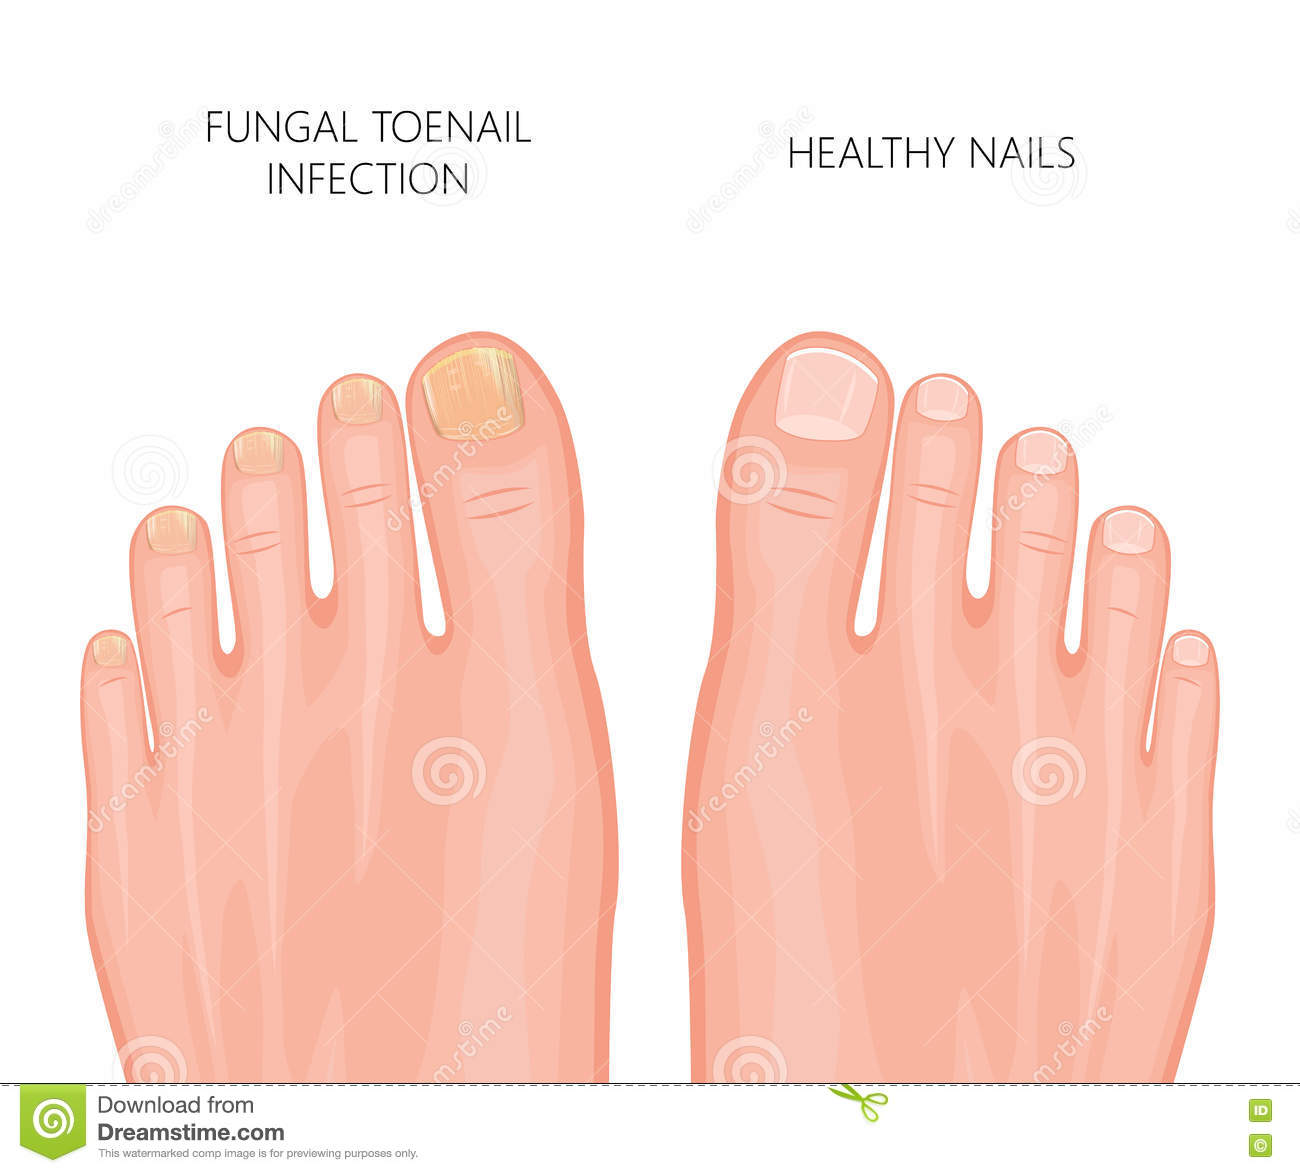 ToeNail fungus stock vector. Illustration of barefoot - 75016177